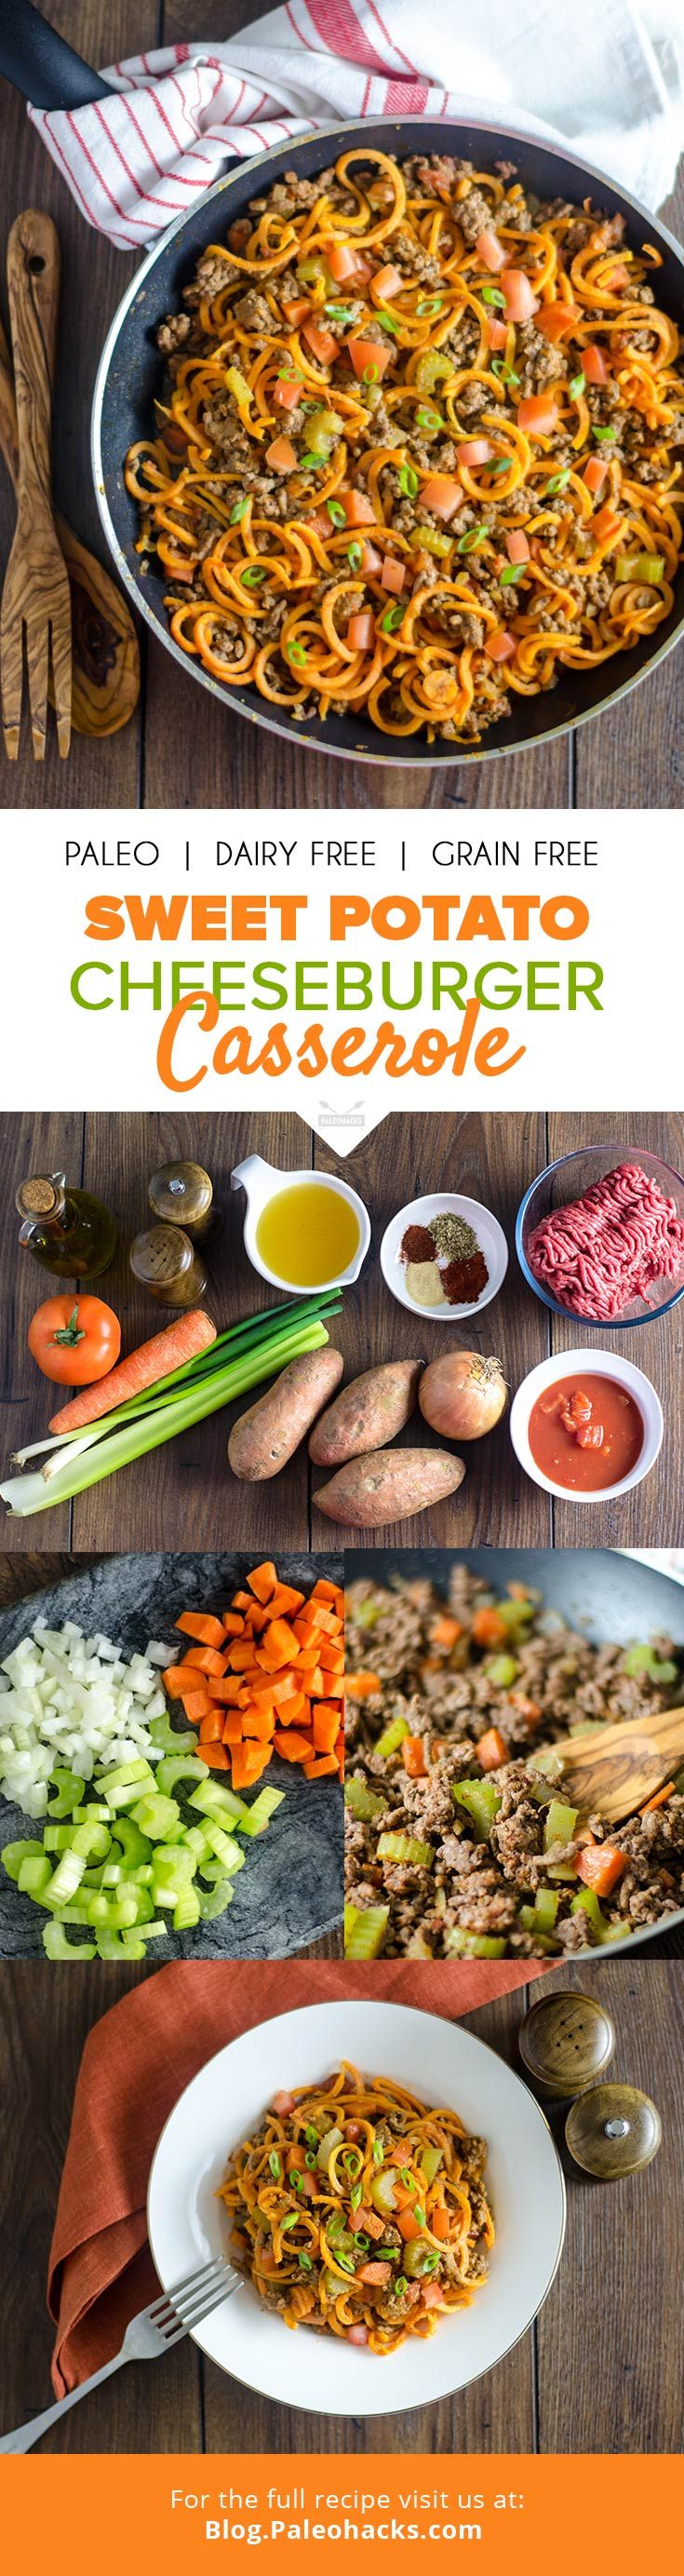 Trad-Pin-Sweet-Potato-Cheeseburger-Casserole.jpg